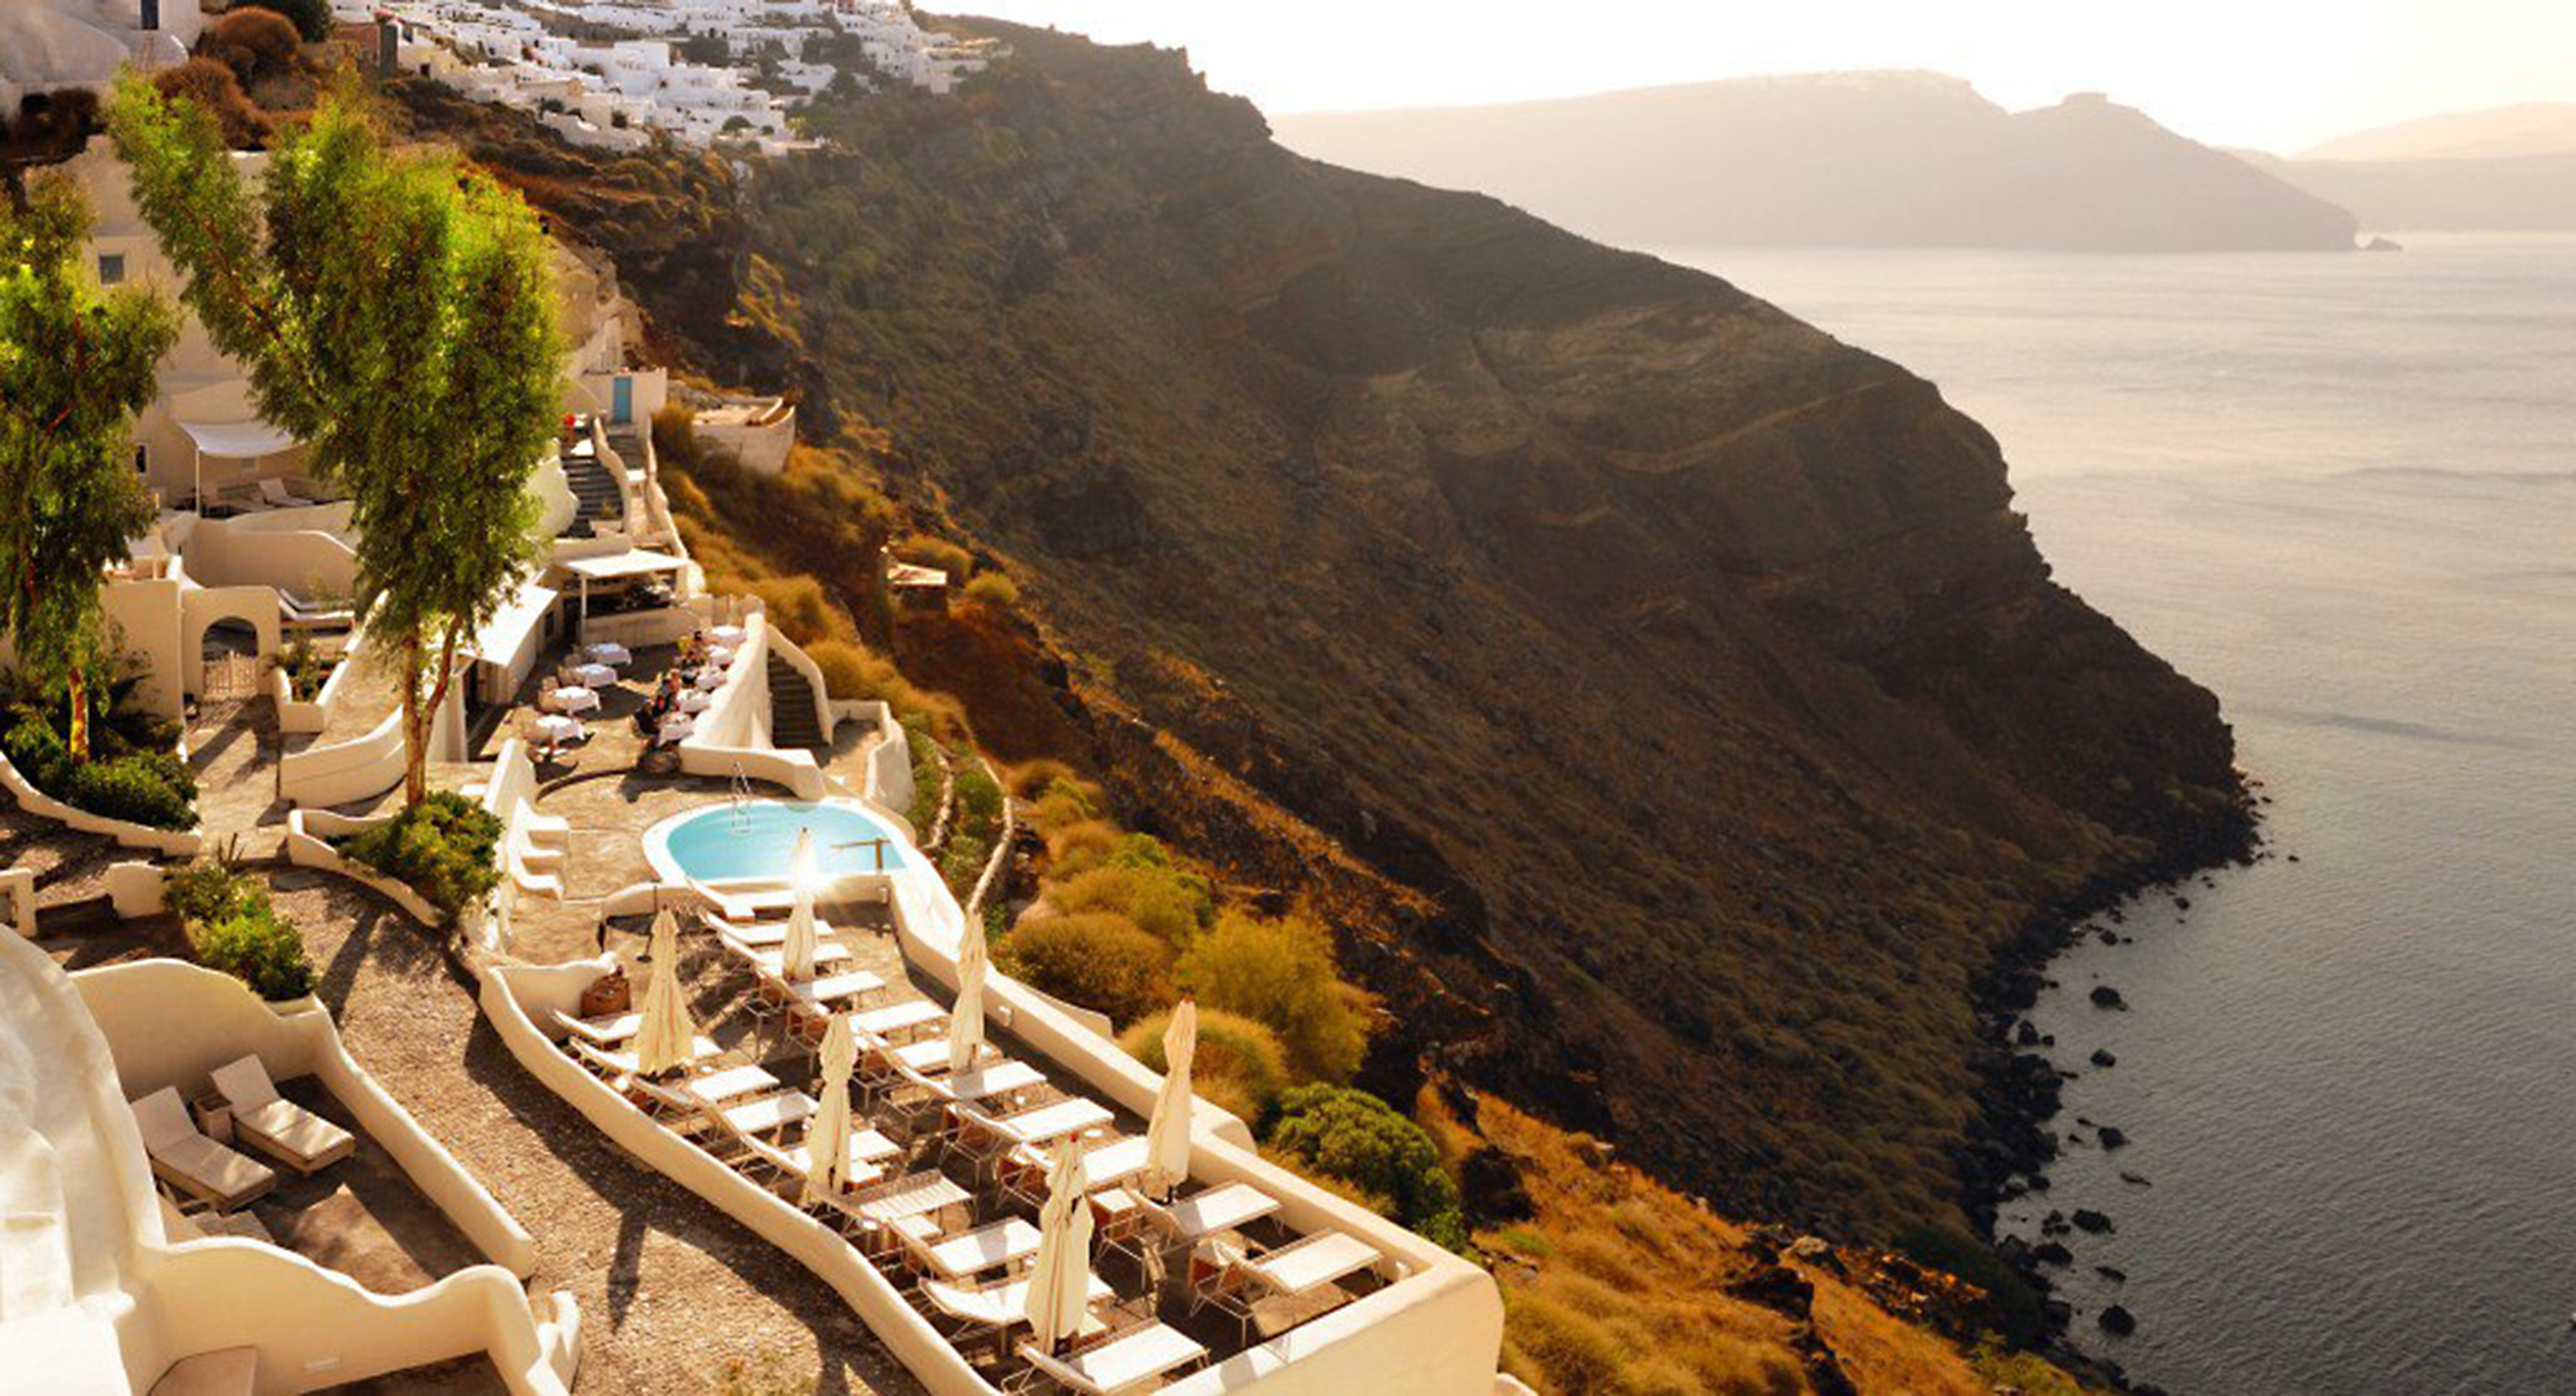 Hotels Luxury Travel outdoor mountain Nature Coast vacation tourism Sea terrain surrounded